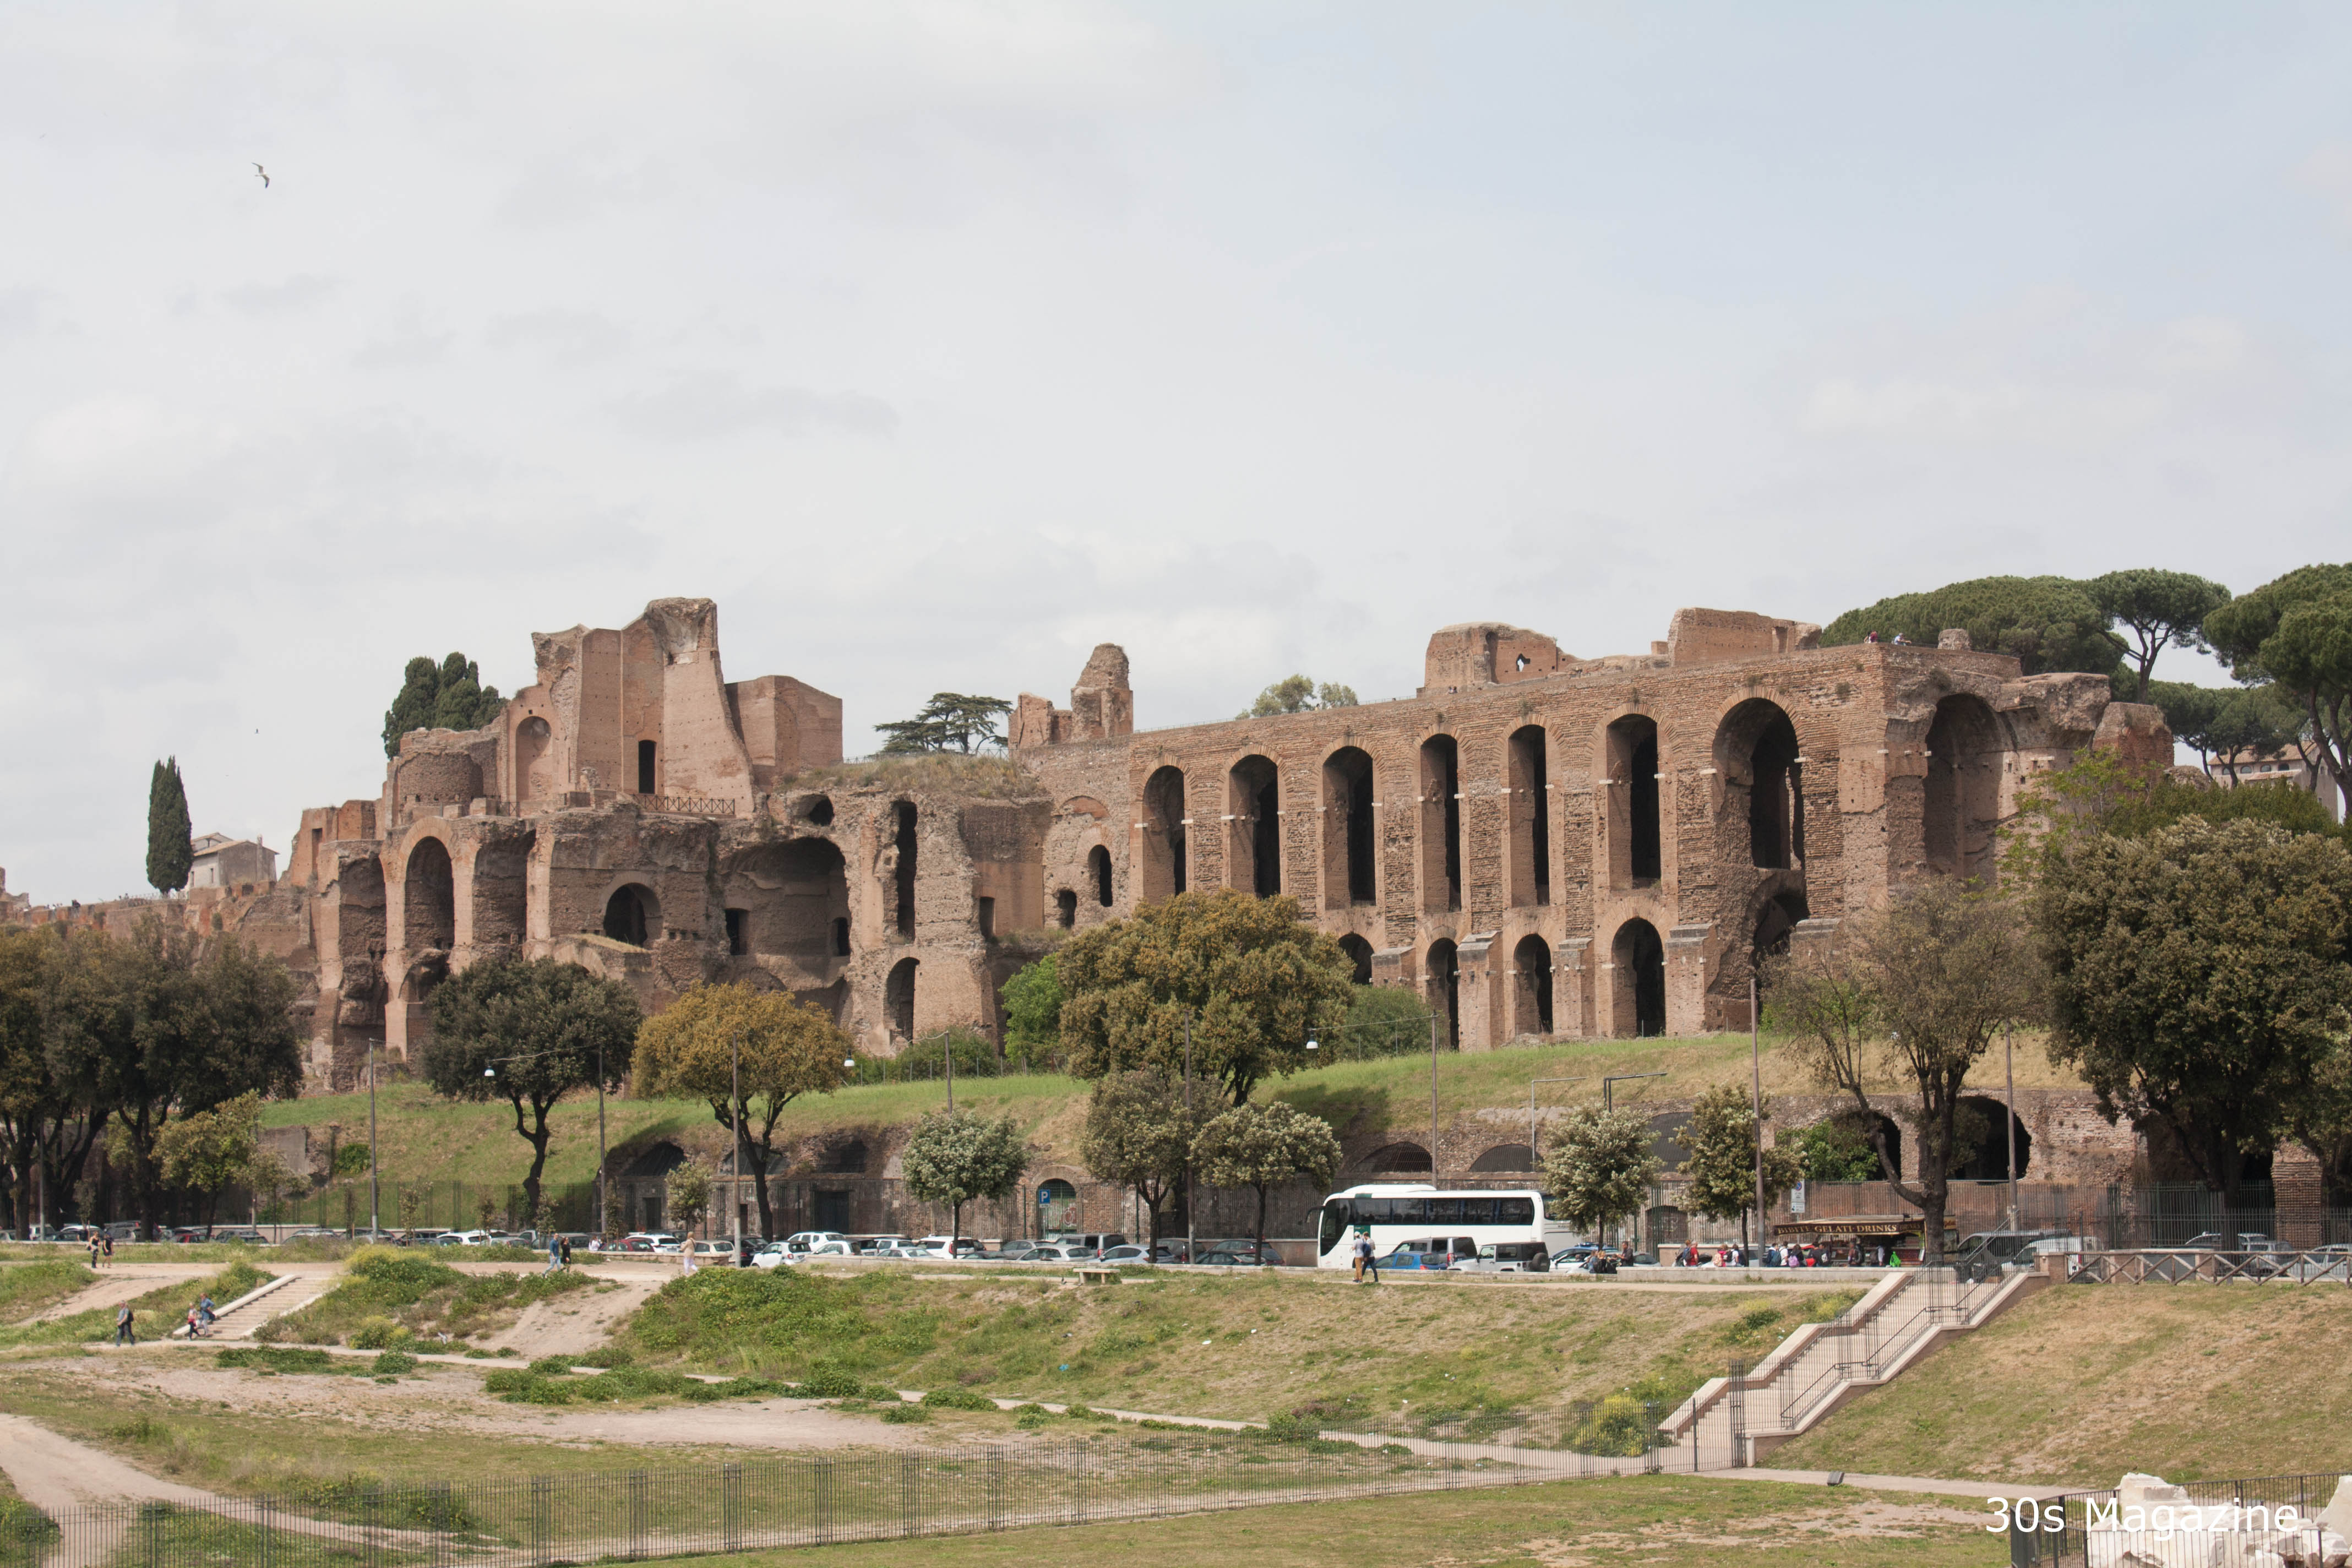 30s Magazine - Rome in 4 days – Day 1: Monti and the Ancient sites